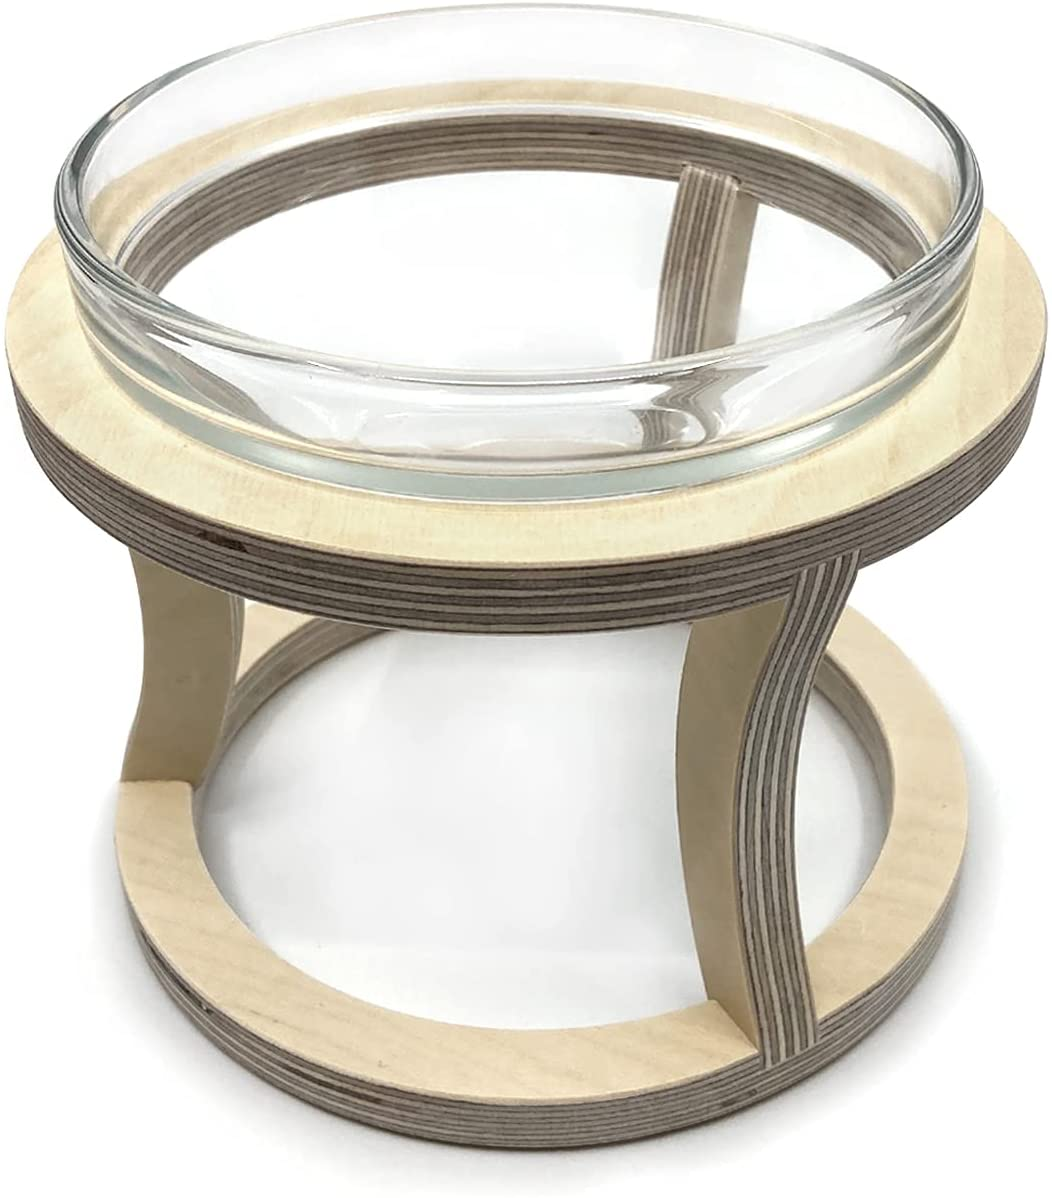 YEPPUPPY Single Raised Cat Water Bowl – Elevated Glass Water Bowl for Cats and Small Dogs – Deep and Wide Pet Bowl with Wooden Stand – Anti Vomit, Whisker friendly, Stress free Cat Bowl – Durable and Stable Design – Made in KOREA